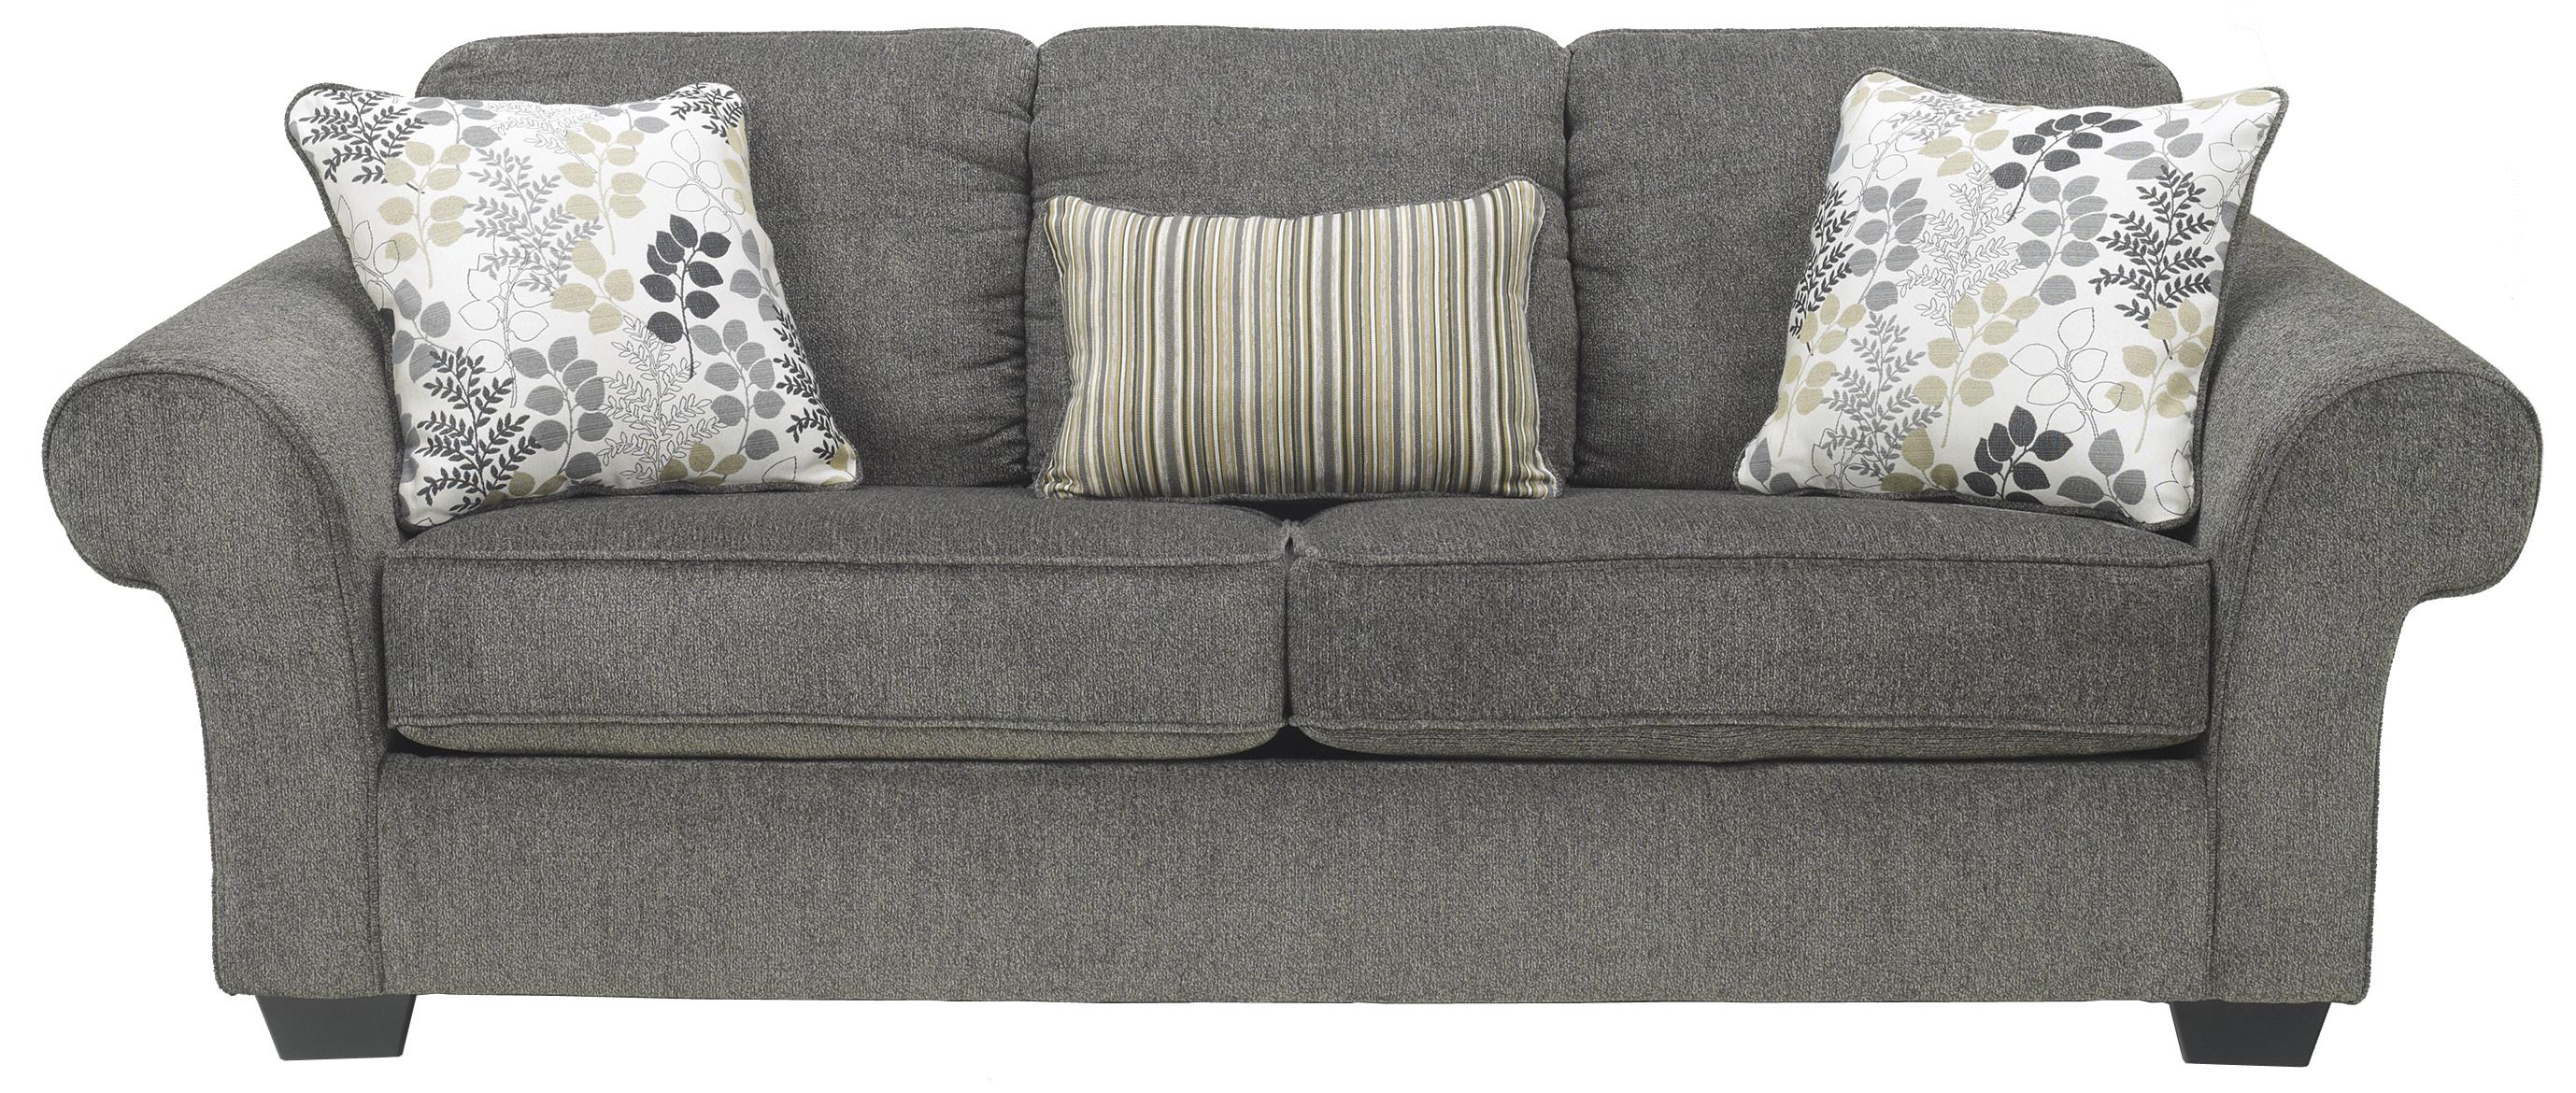 Signature Design by Ashley Makonnen - Charcoal Queen Sofa Sleeper - Item Number: 7800039